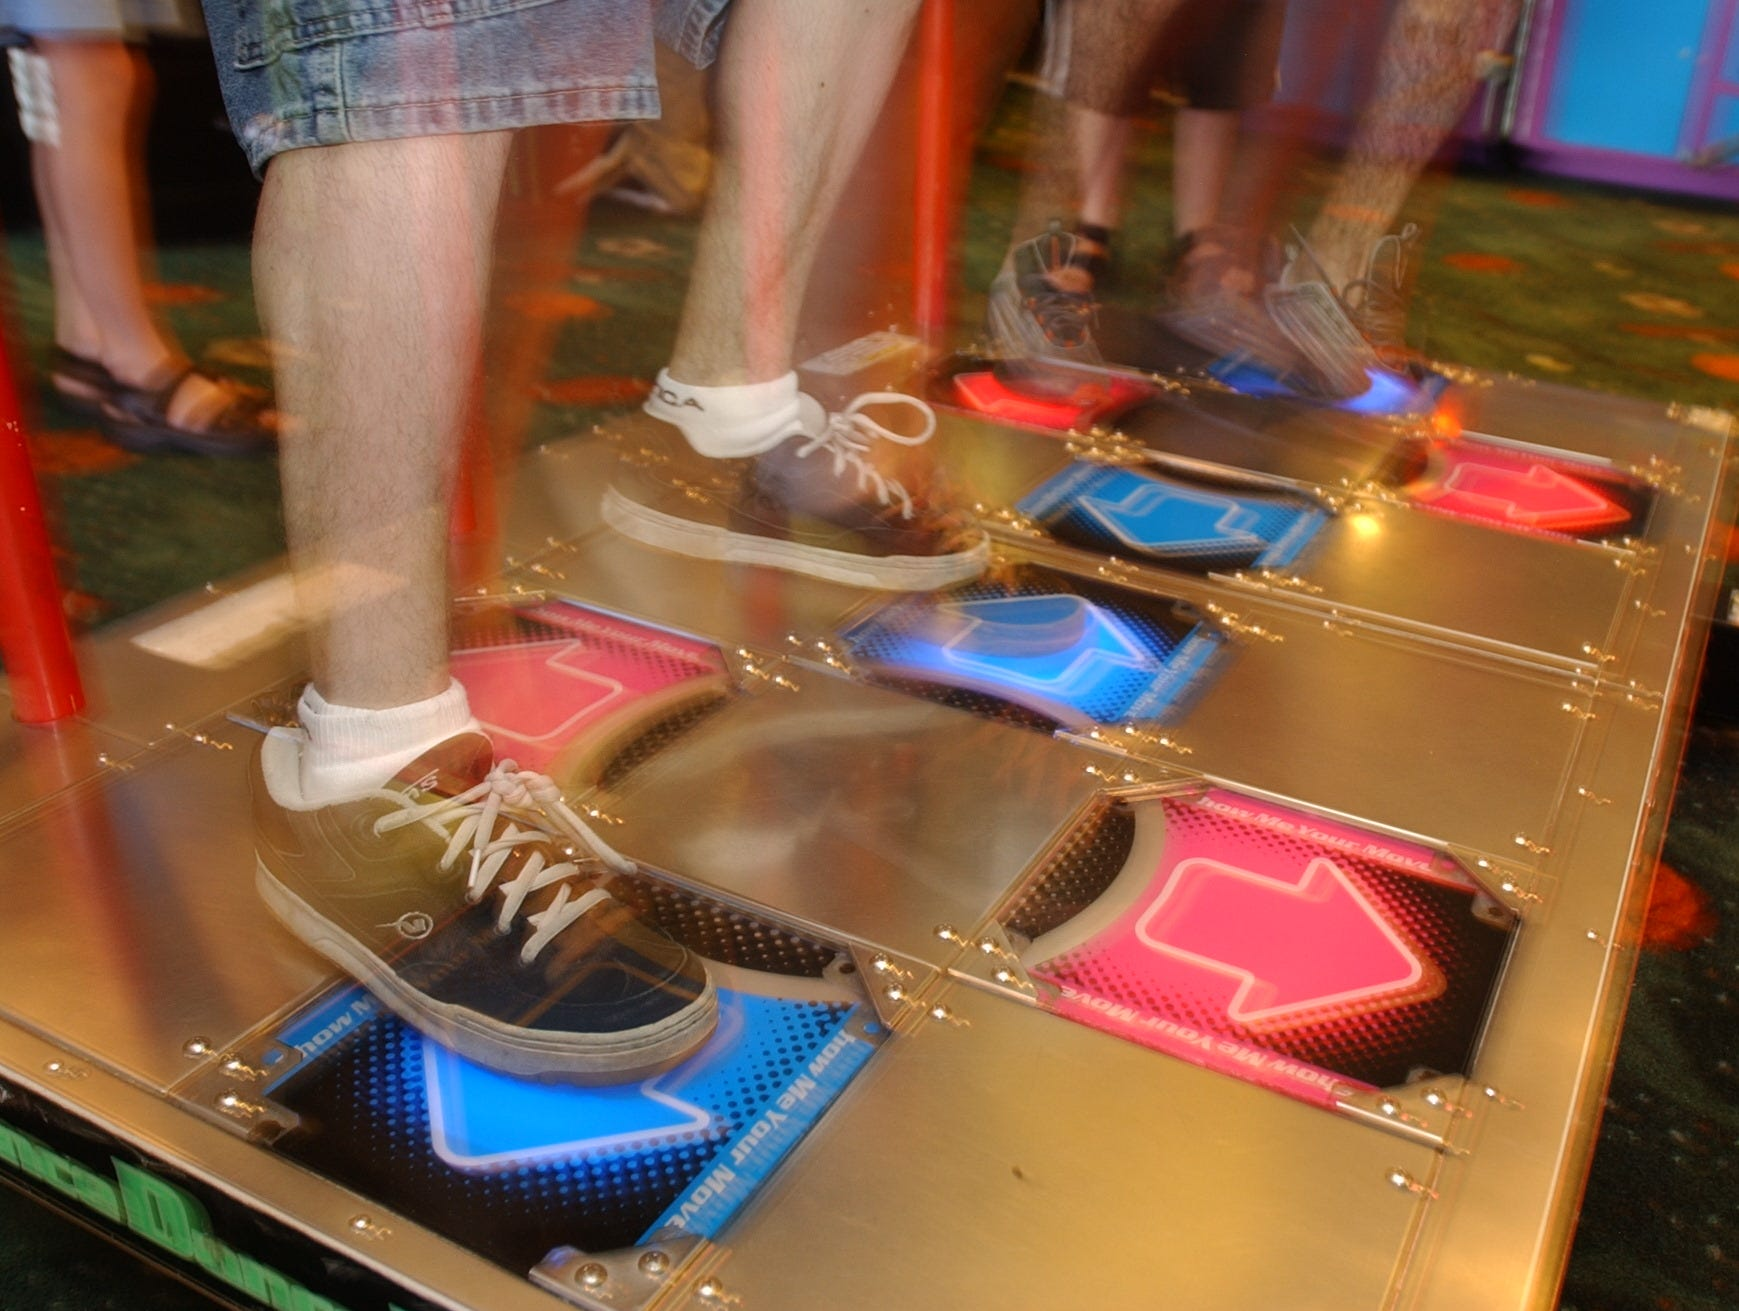 Dance, Dance Revolution video game at Fun N Games arcade at Willowbrook Mall. Lit-up squares on the floor indicate where dancers should step to keep up with the music on July 15, 2002.